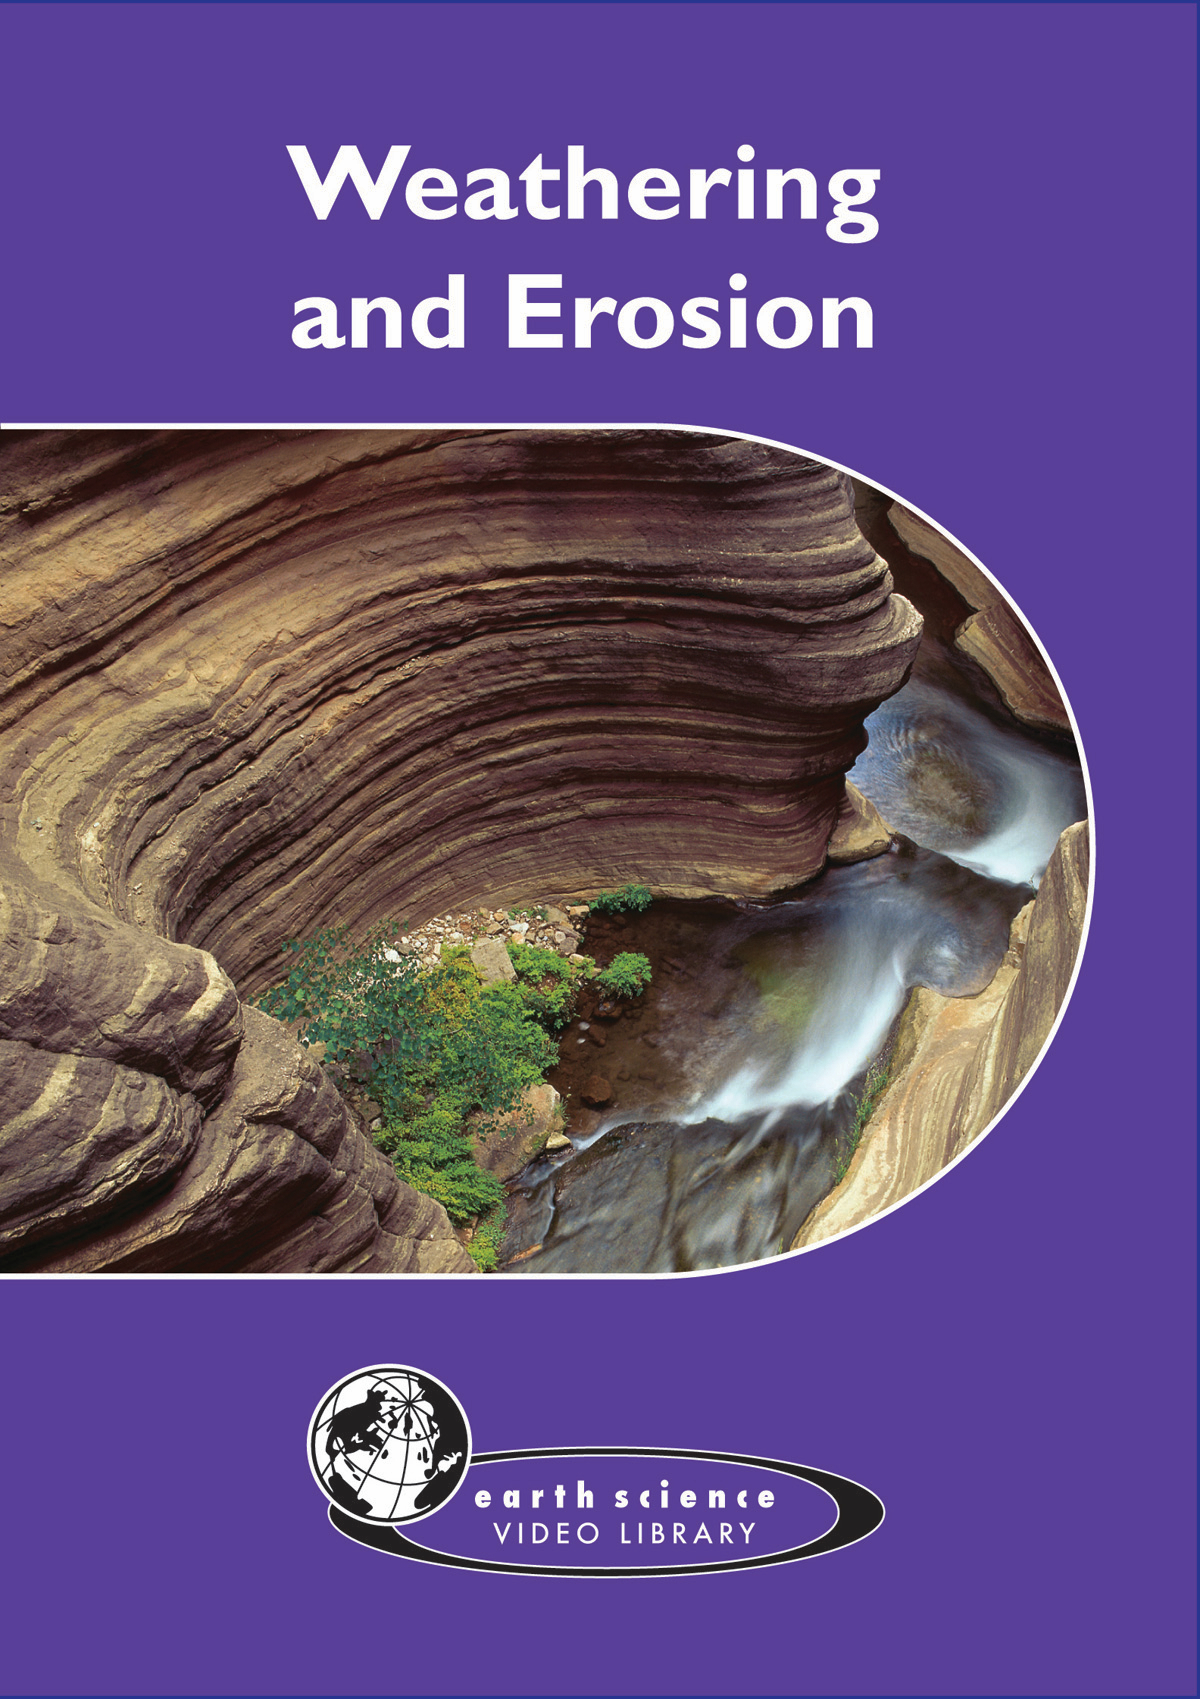 earth science weathering and erosion notes Fifth grade 57 earth study guide 1 earth science - sol 57 heat and pressure inside the earth and weathering and erosion on the surface of the.